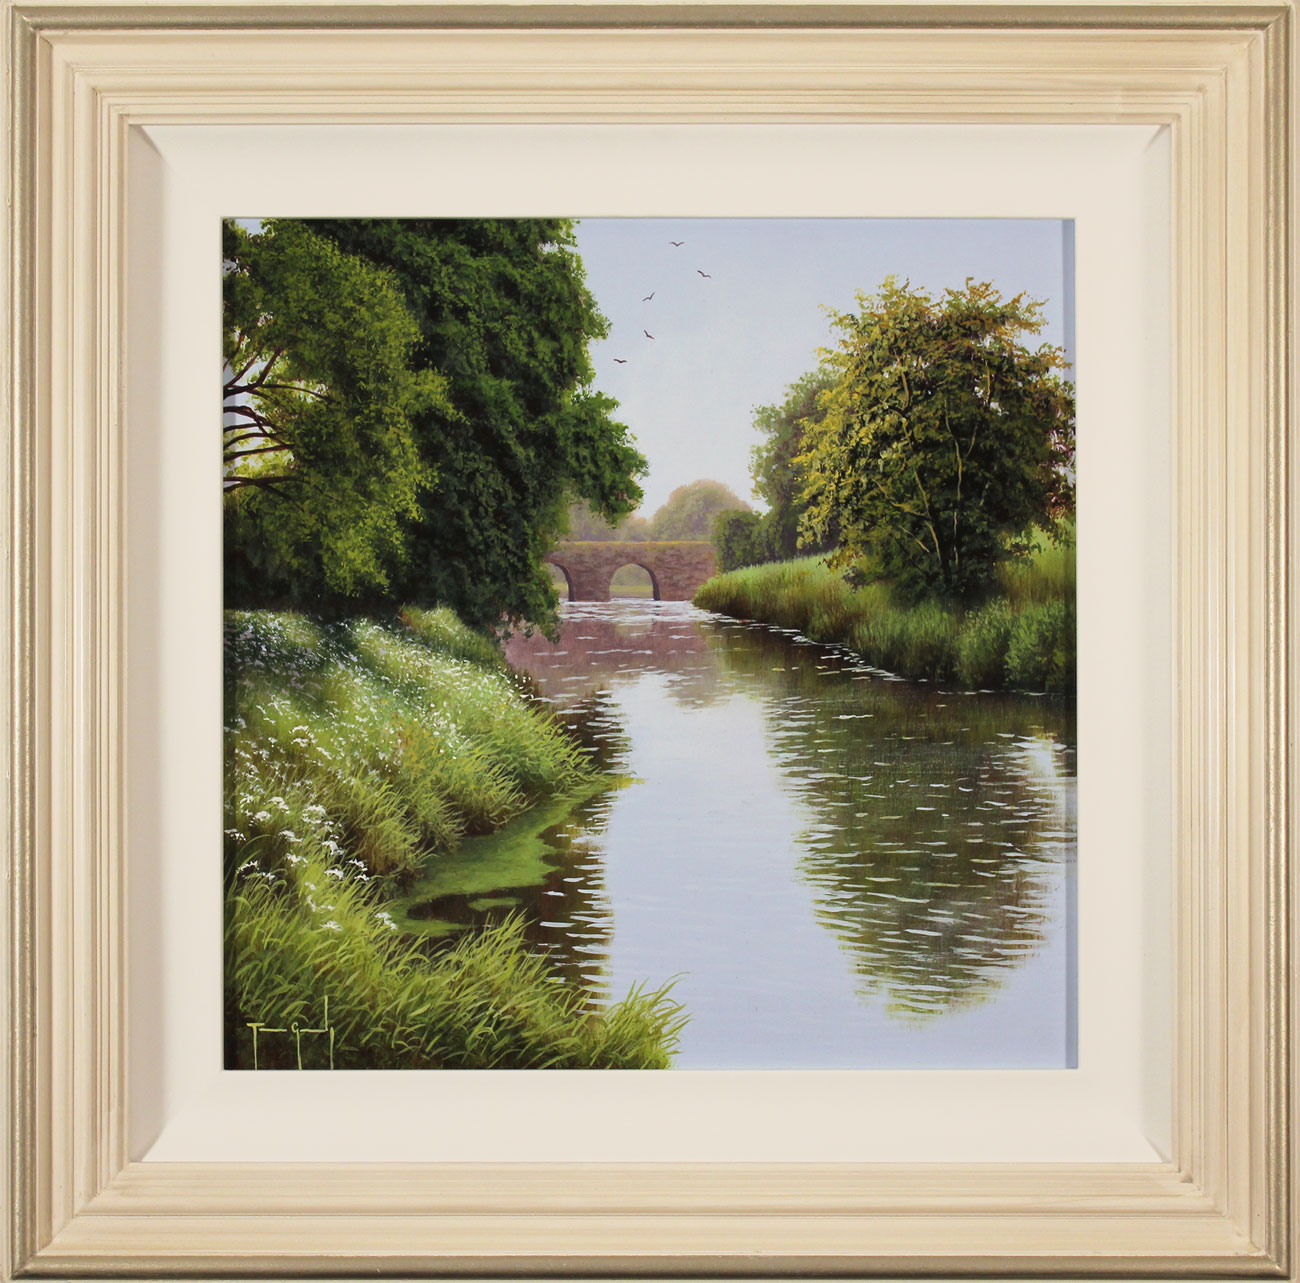 Terry Grundy, Original oil painting on panel, Summer by the River. Click to enlarge